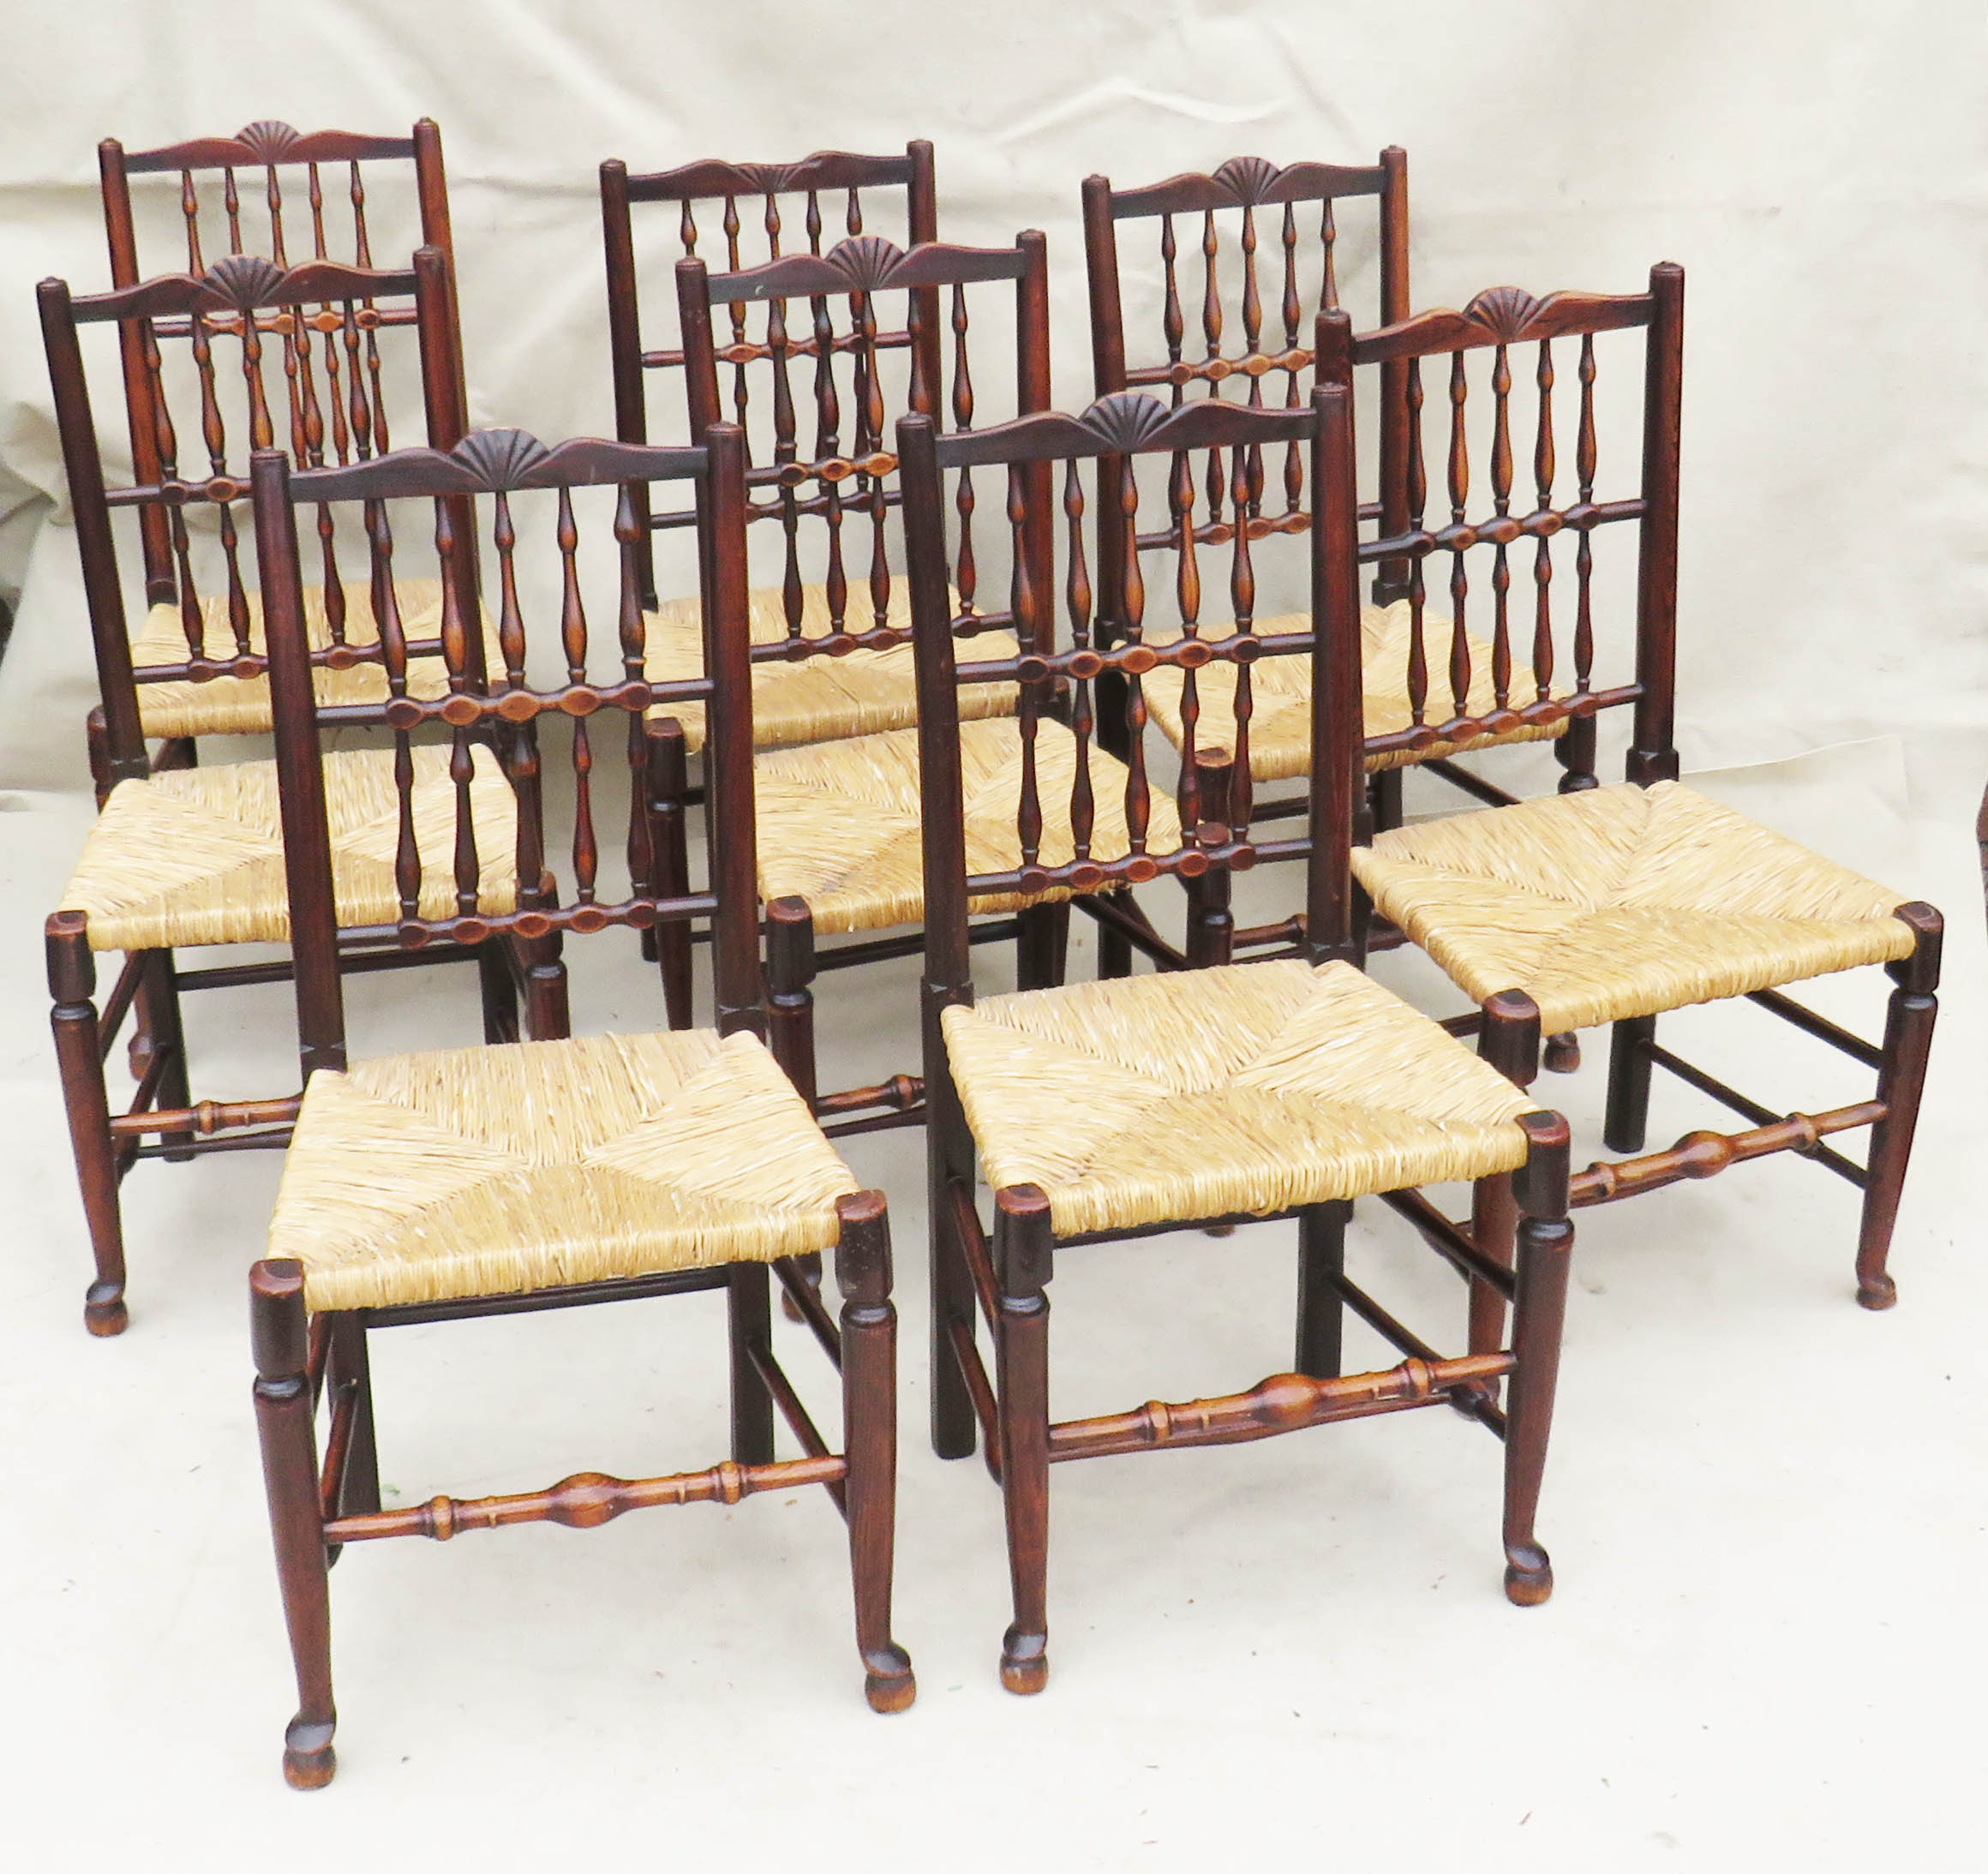 Matched Set Of 8 Spindle Back Dining Chairs, Early 19th Century